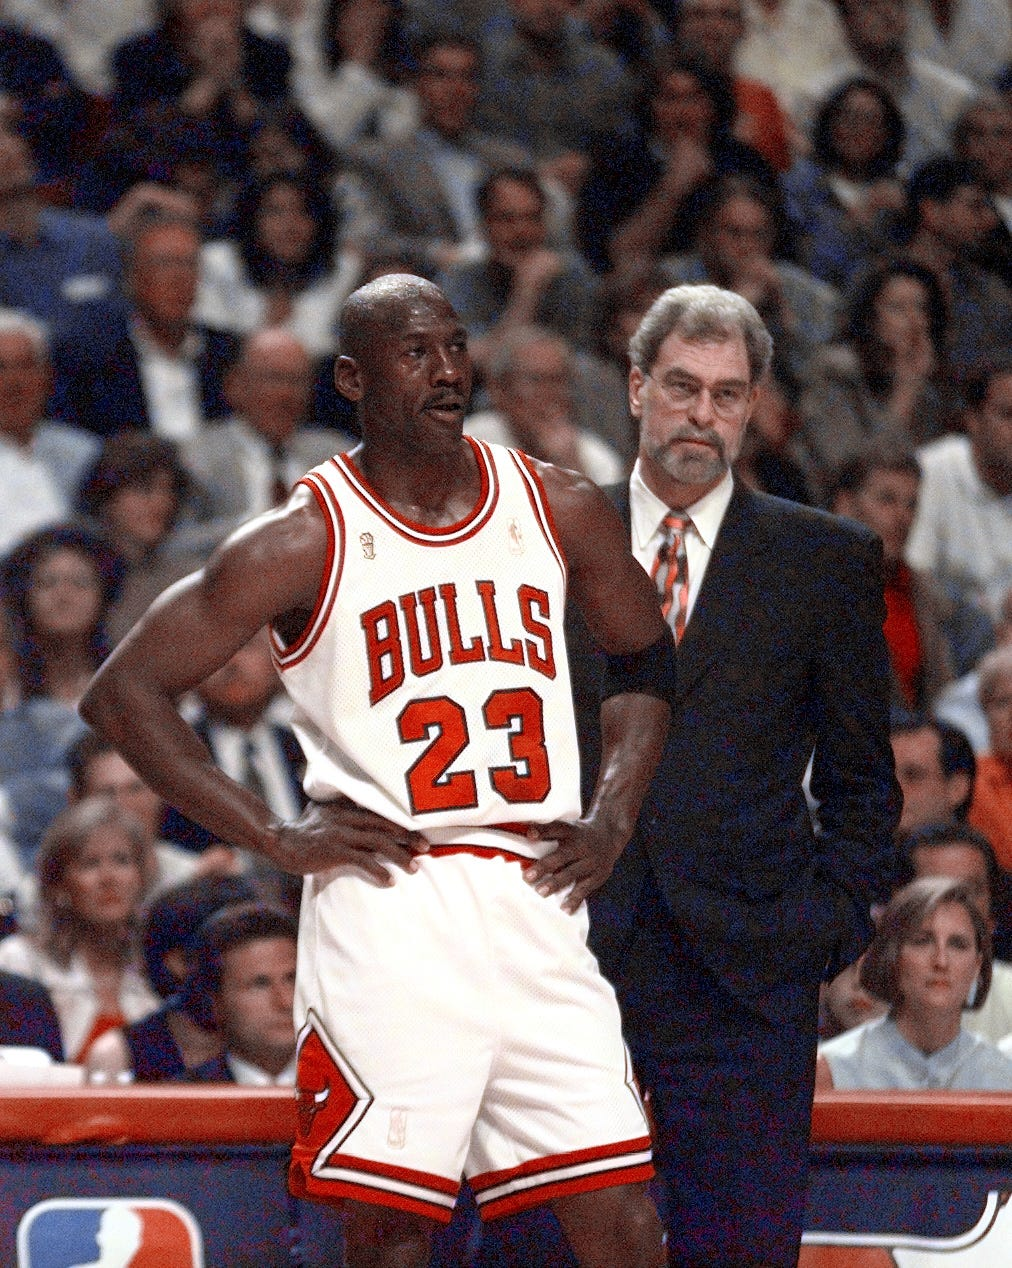 The Last Dance : Takeaways from first episodes of documentary on Michael Jordan and Bulls